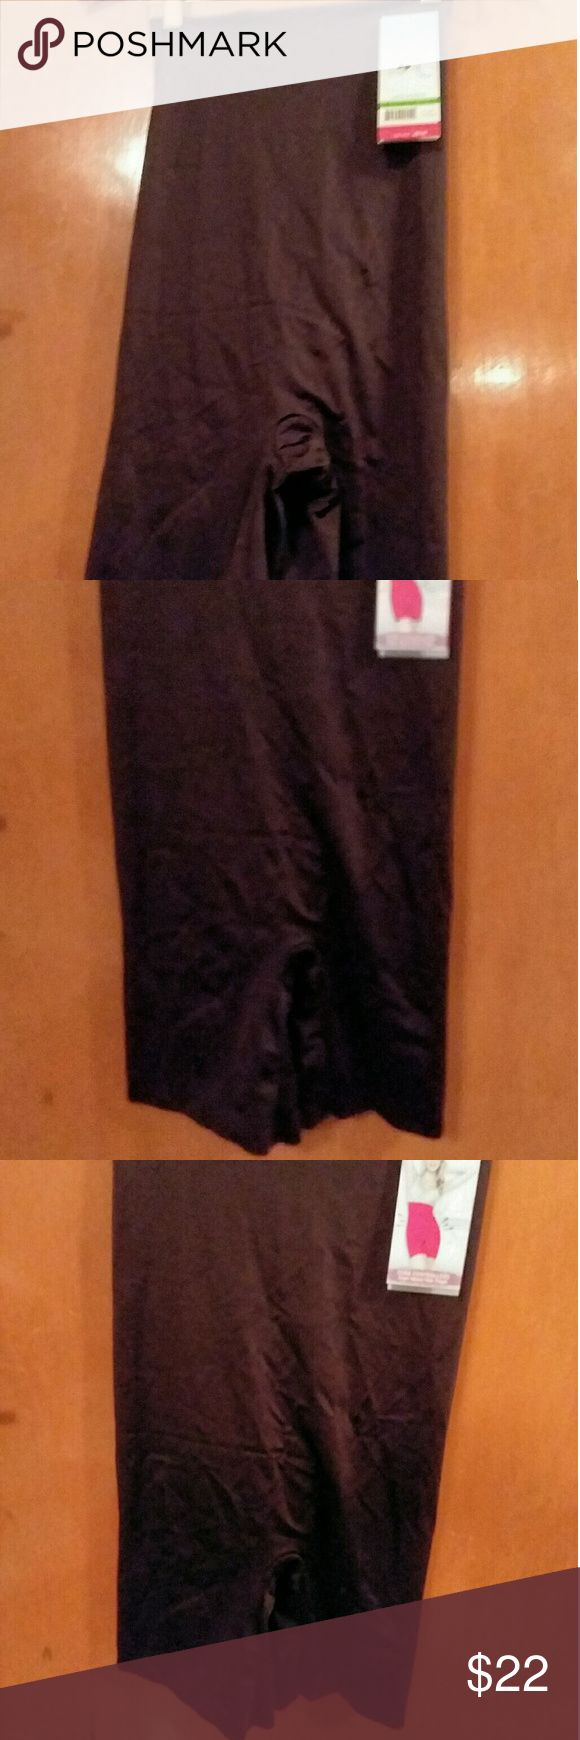 """Assets by Spanx High Waist Core Controller NWT L This is an Assets by Spanx black high waist mid-thigh core controller in size ladies Large. This item is New With Tags and originally retailed for $44. It is made of nylon and spandex with a cotton gusset. It is 22"""" long. This will slim the appearance of your middle for a streamlined look. Assets By Spanx Intimates & Sleepwear Shapewear"""